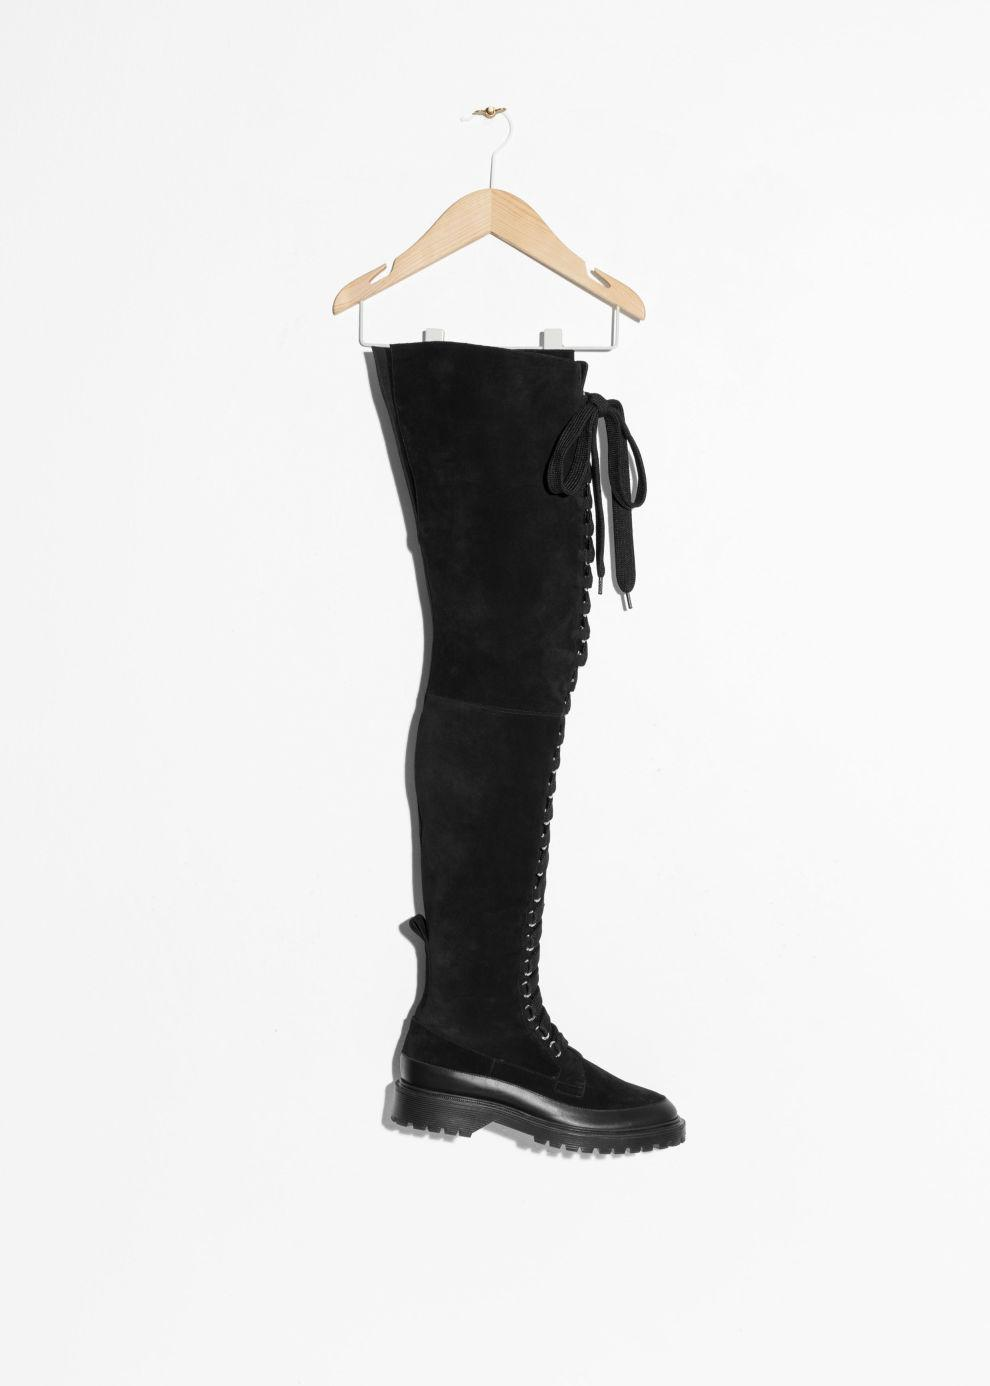 accdbfe700a Other Stories - Black Suede Lace-up Over Knee Boot - Lyst. View fullscreen